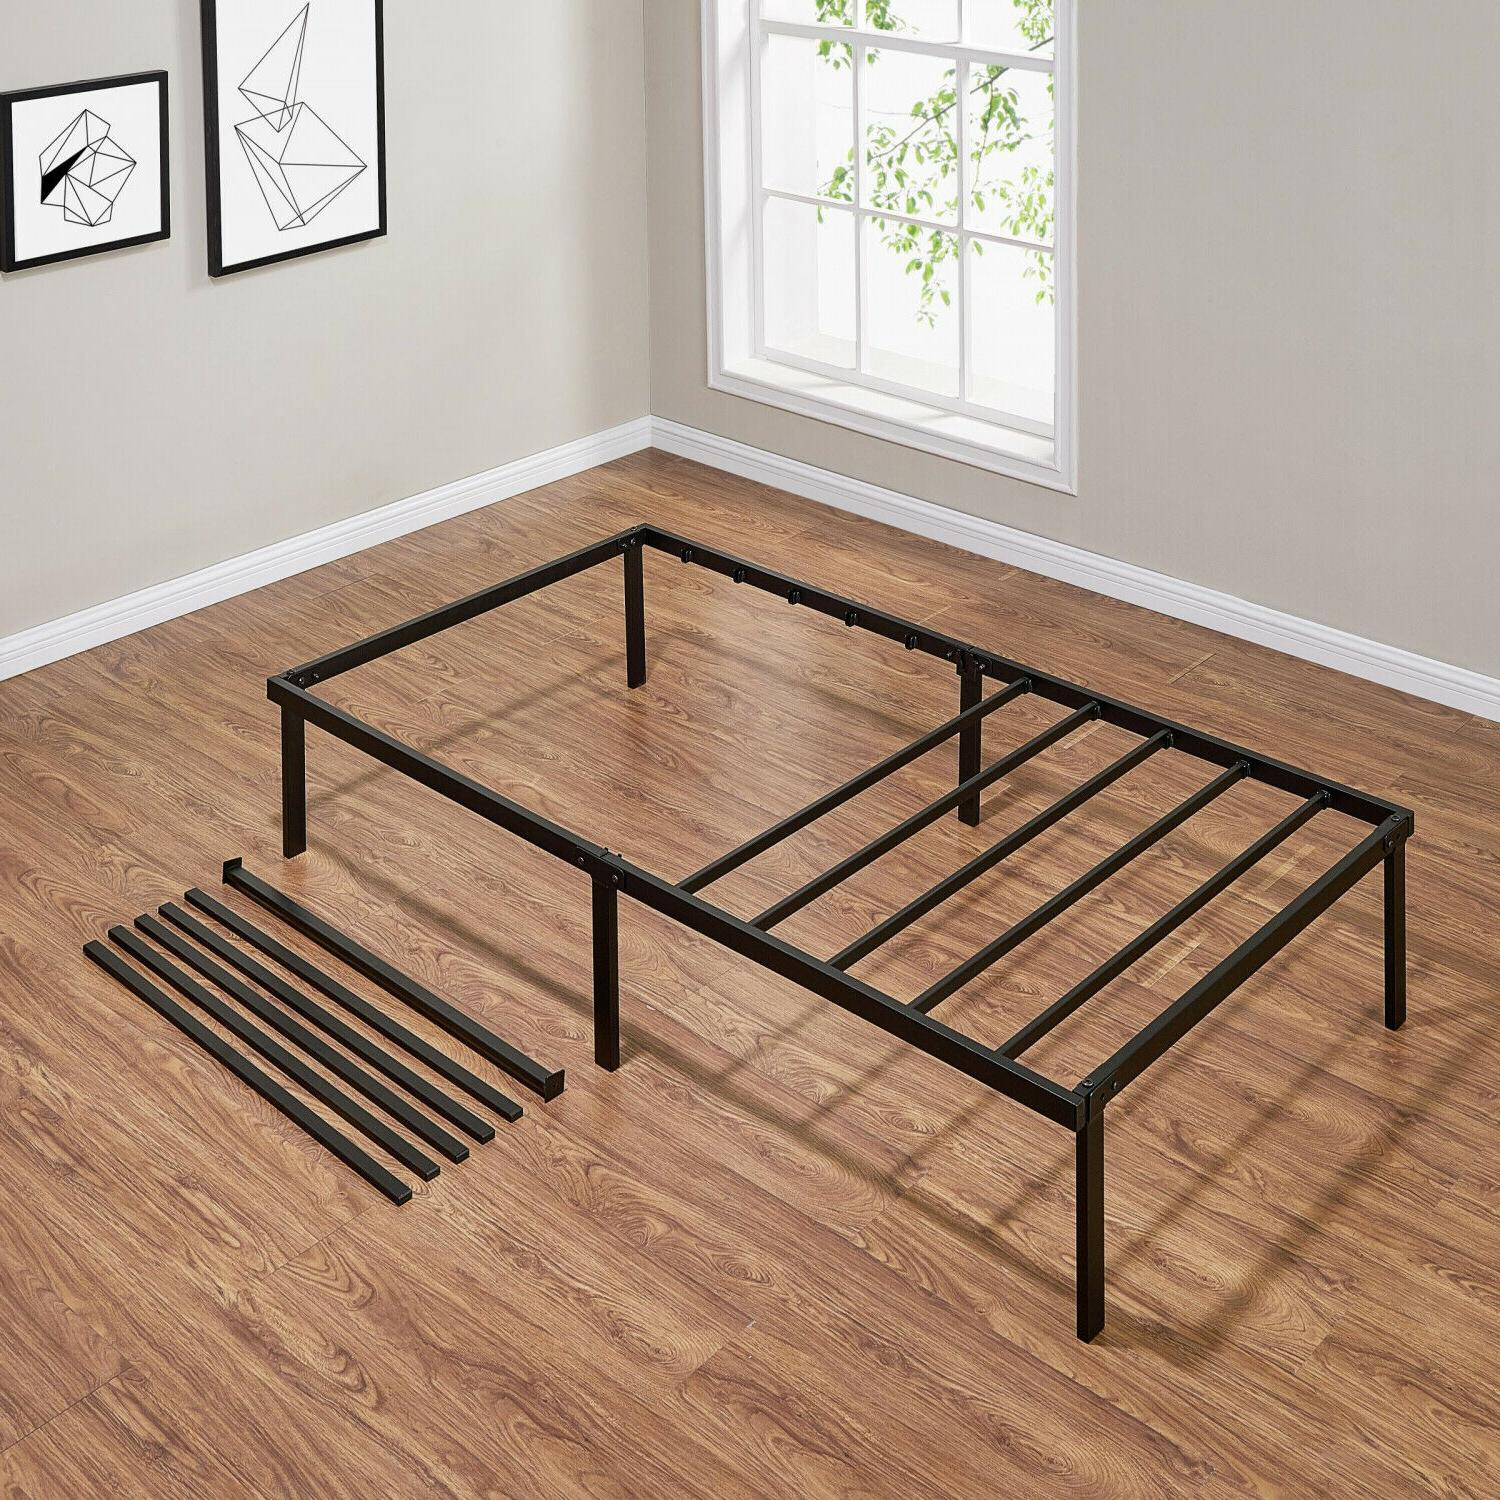 Steel Bed 14 Inches Heavy Duty Furniture